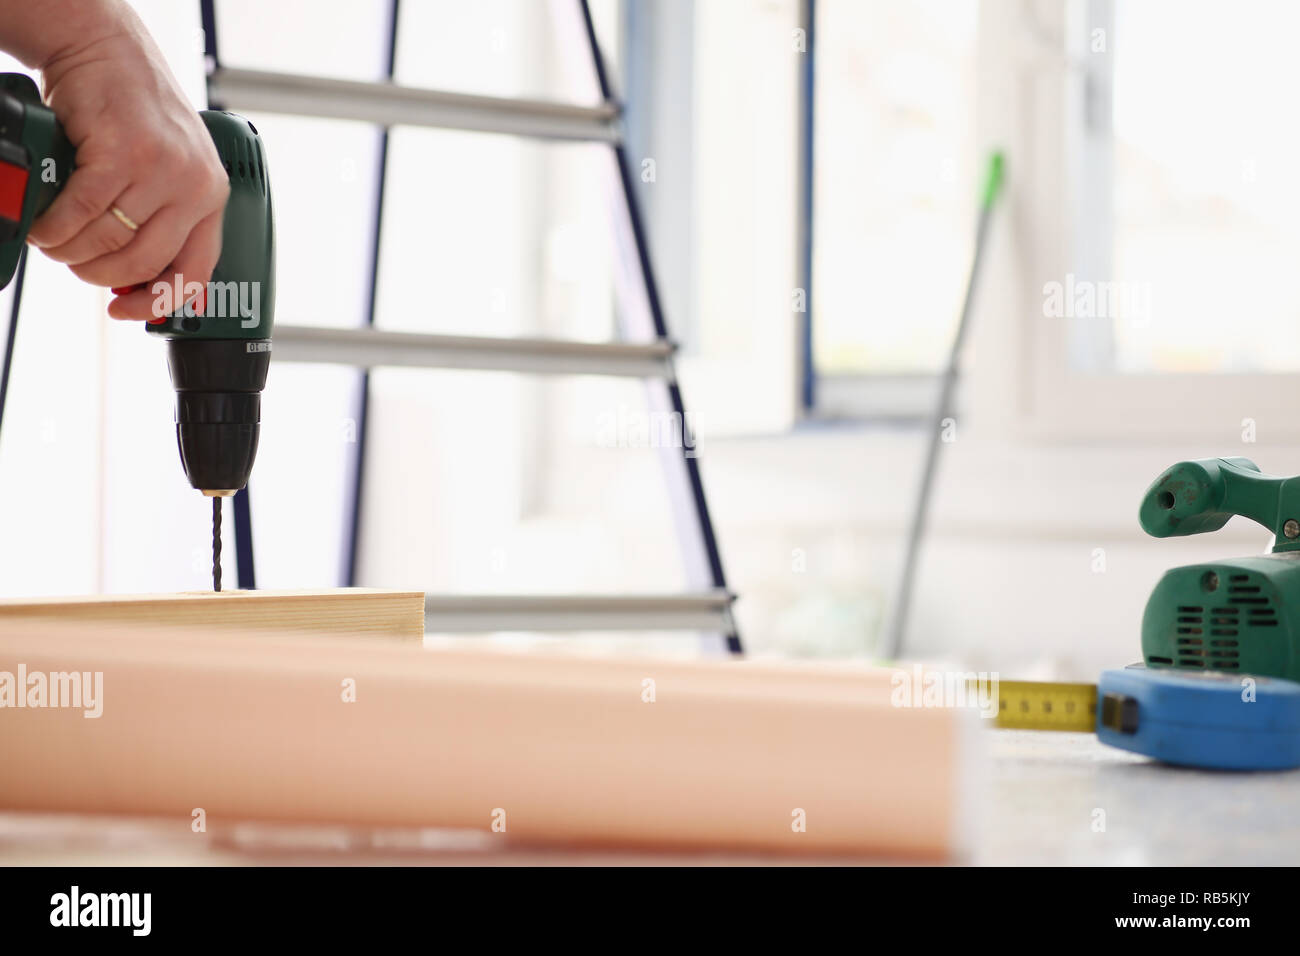 Flat drill bit make hole in wooden bar - Stock Image